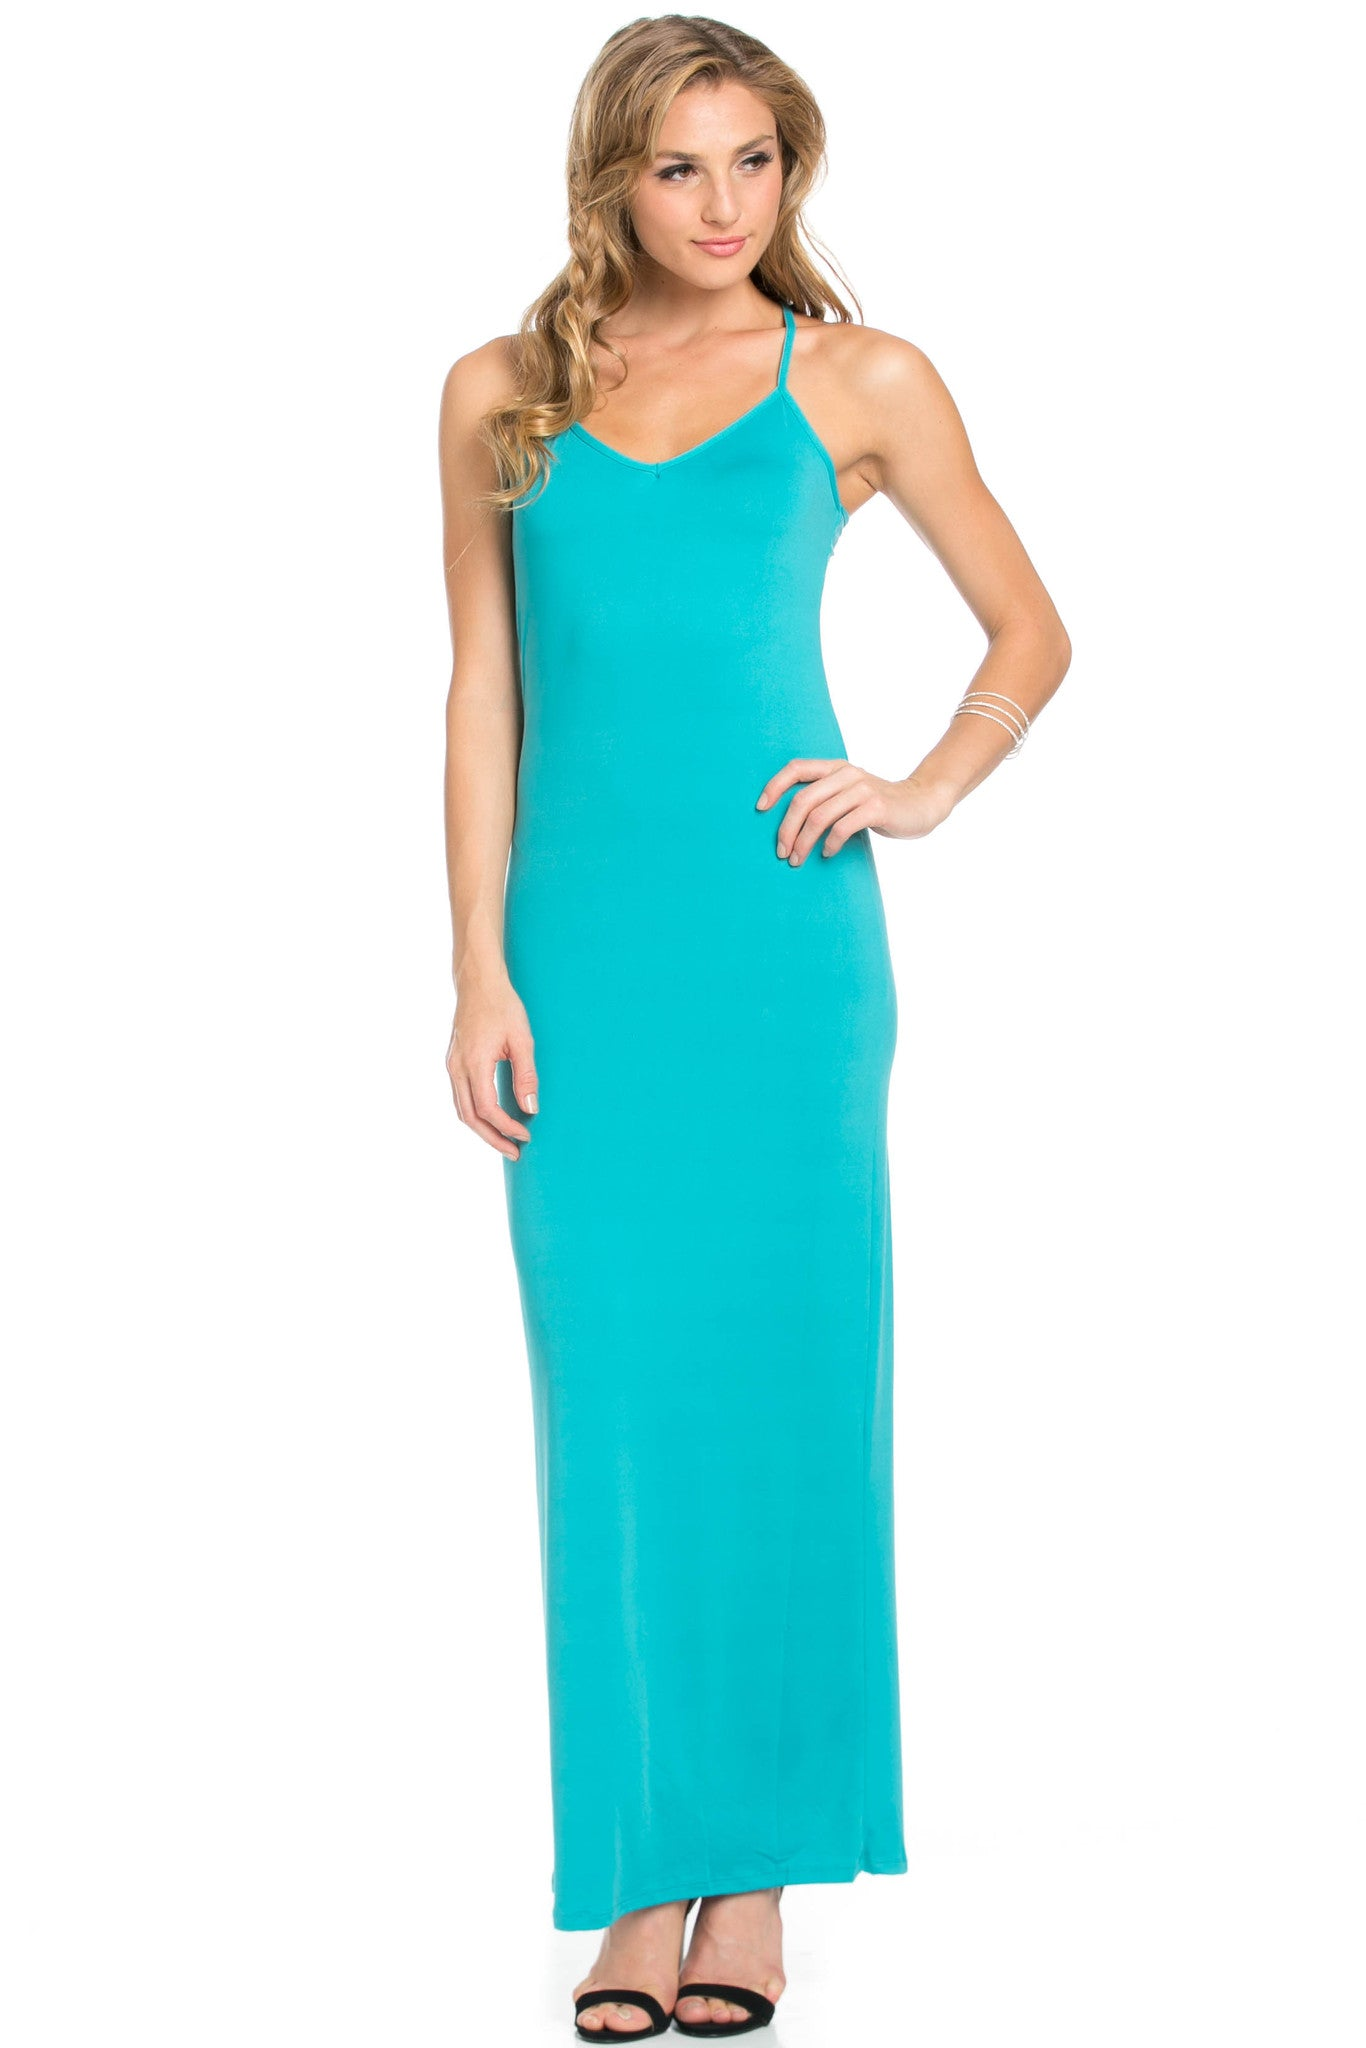 Micro Suede Jade Maxi Dress - Dresses - My Yuccie - 5